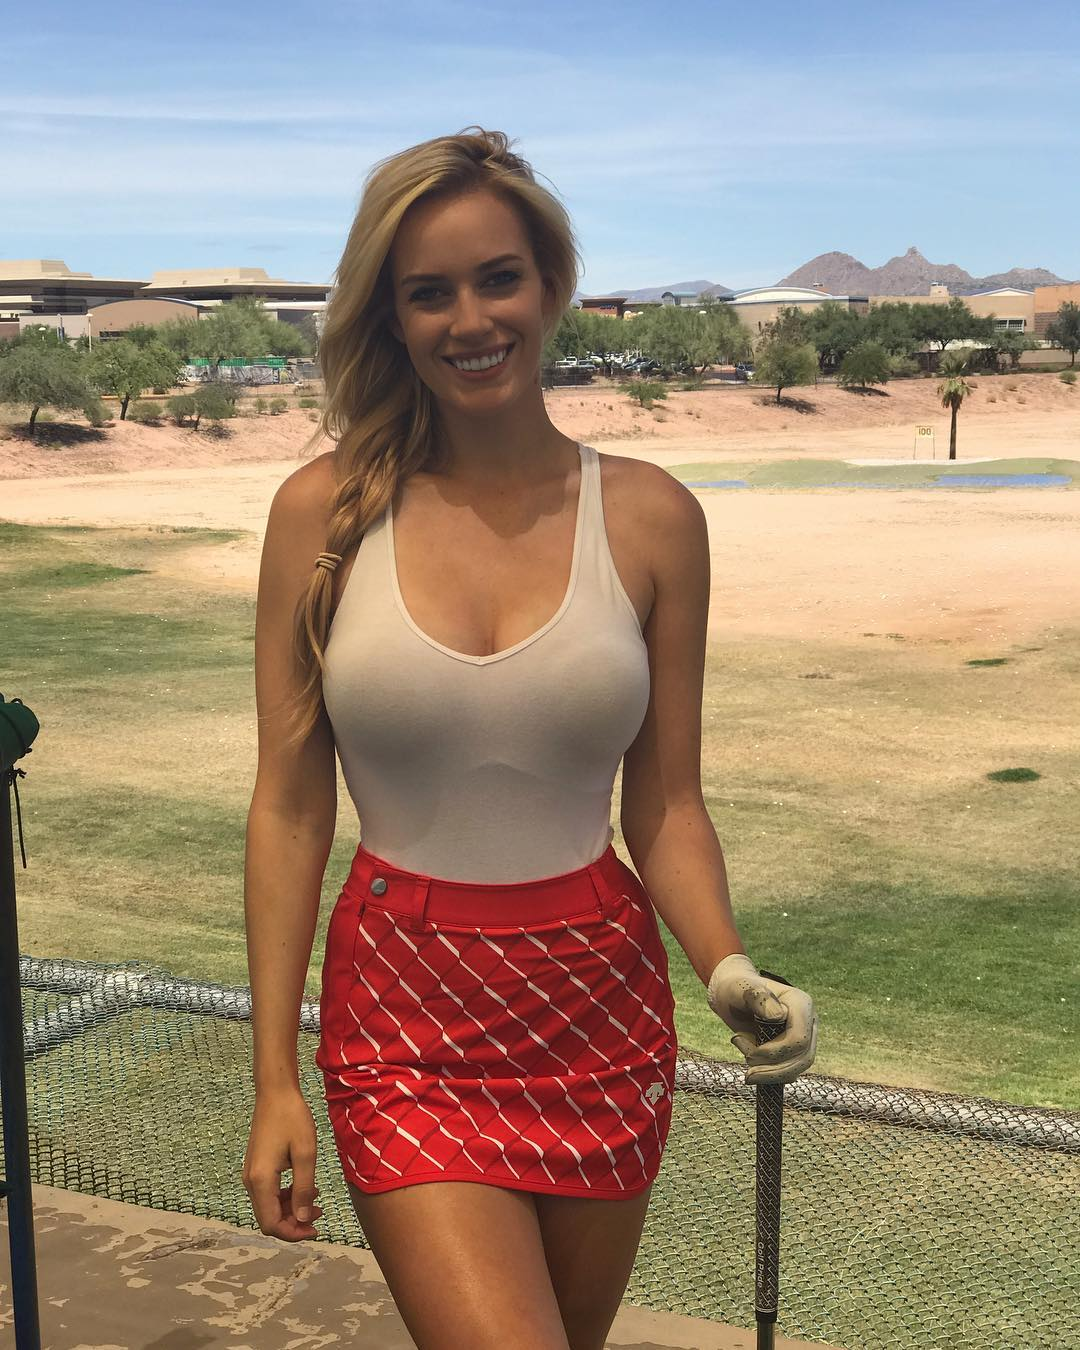 15 - Paige Spiranac Is The Hottest Professional Female Golfer in History